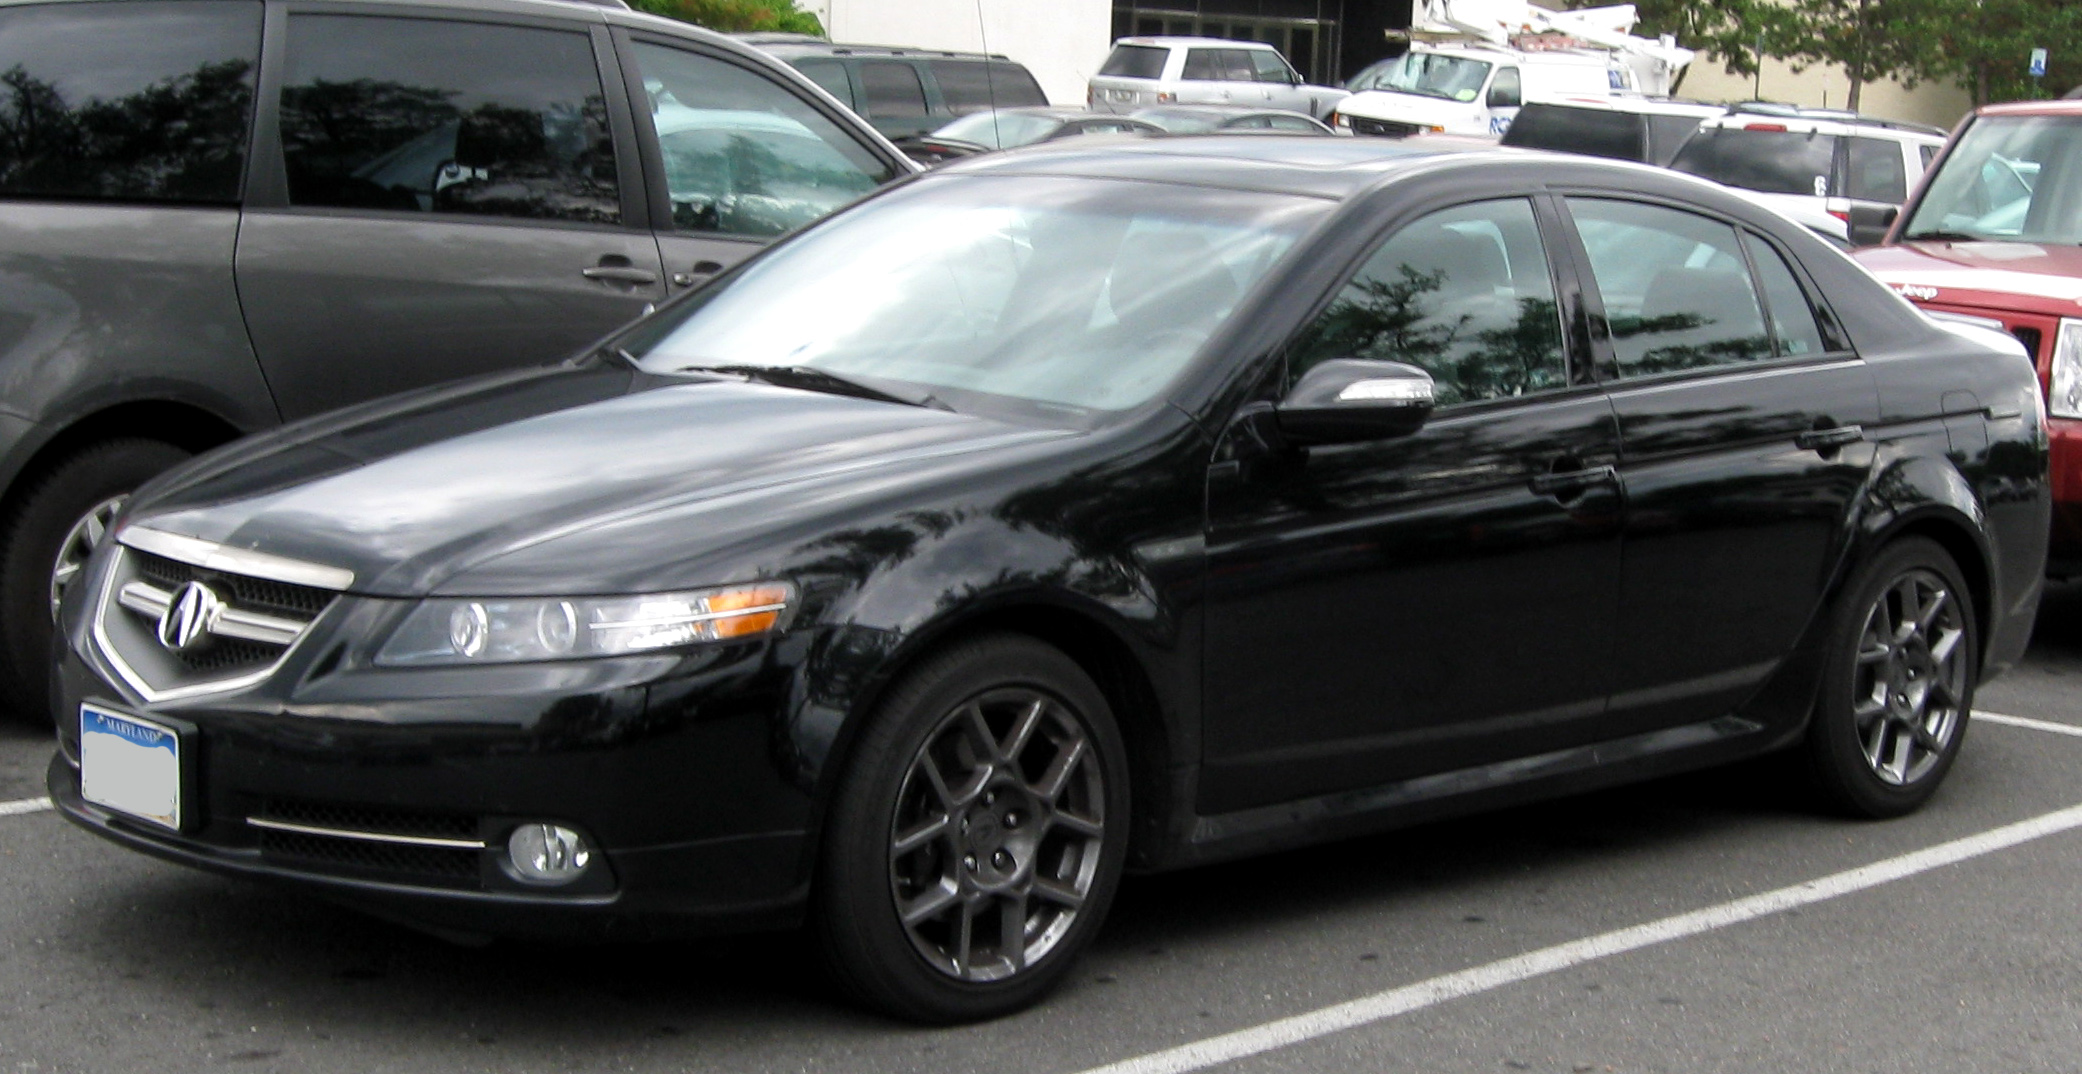 File:Acura TL Type S -- 08-21-2009.jpg - Wikipedia